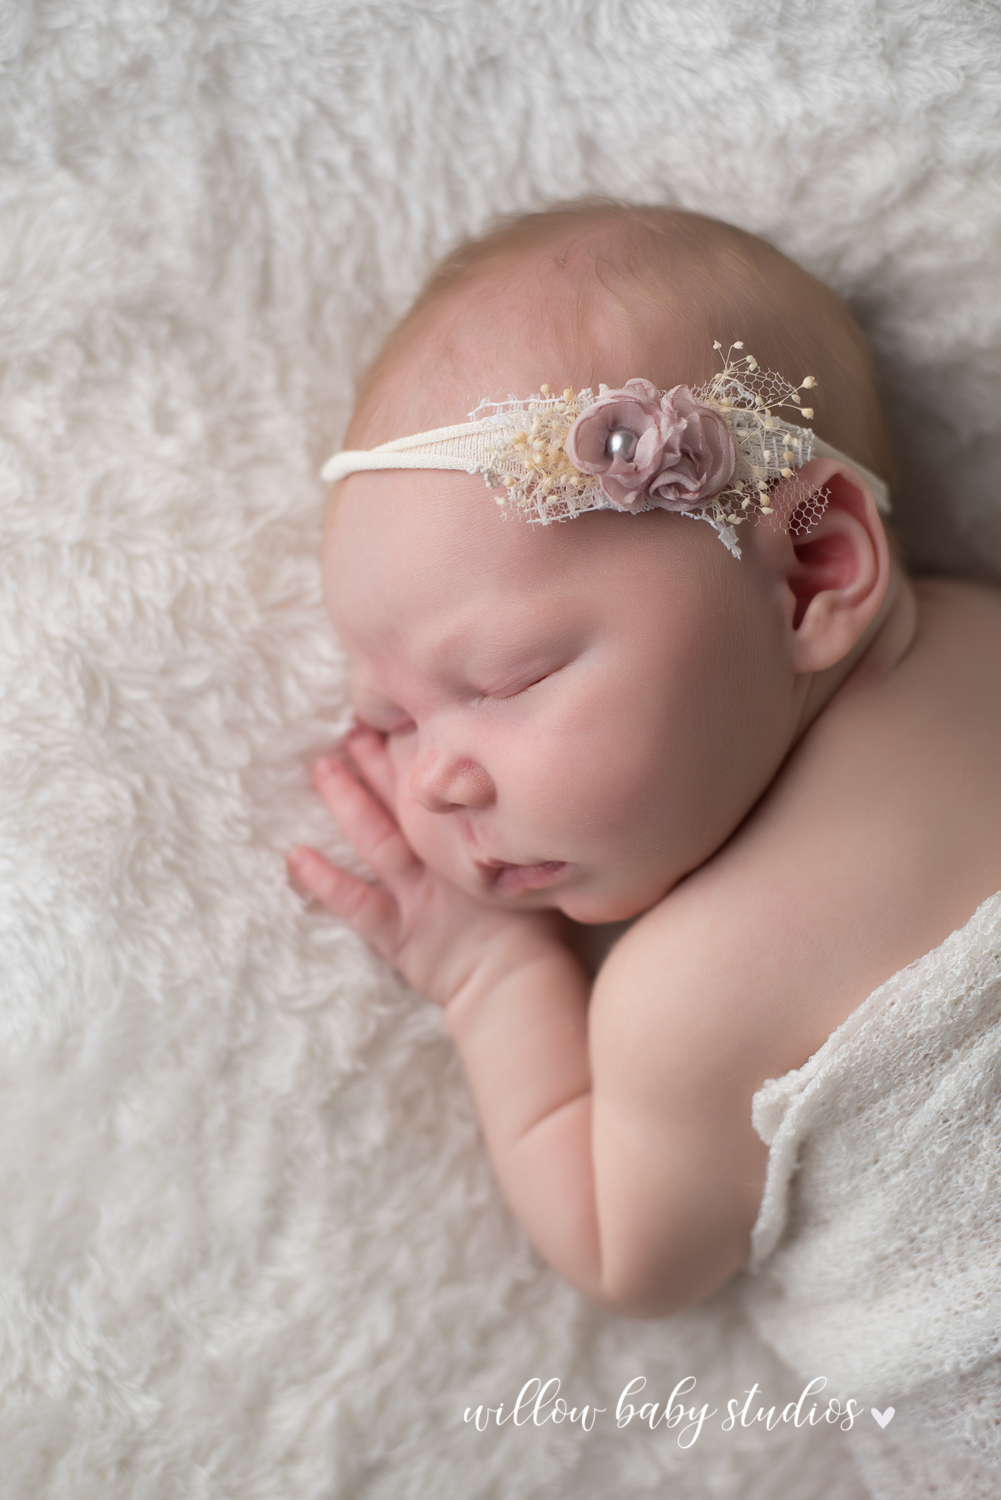 jamaica_plain_newborn_photography-01.jpg